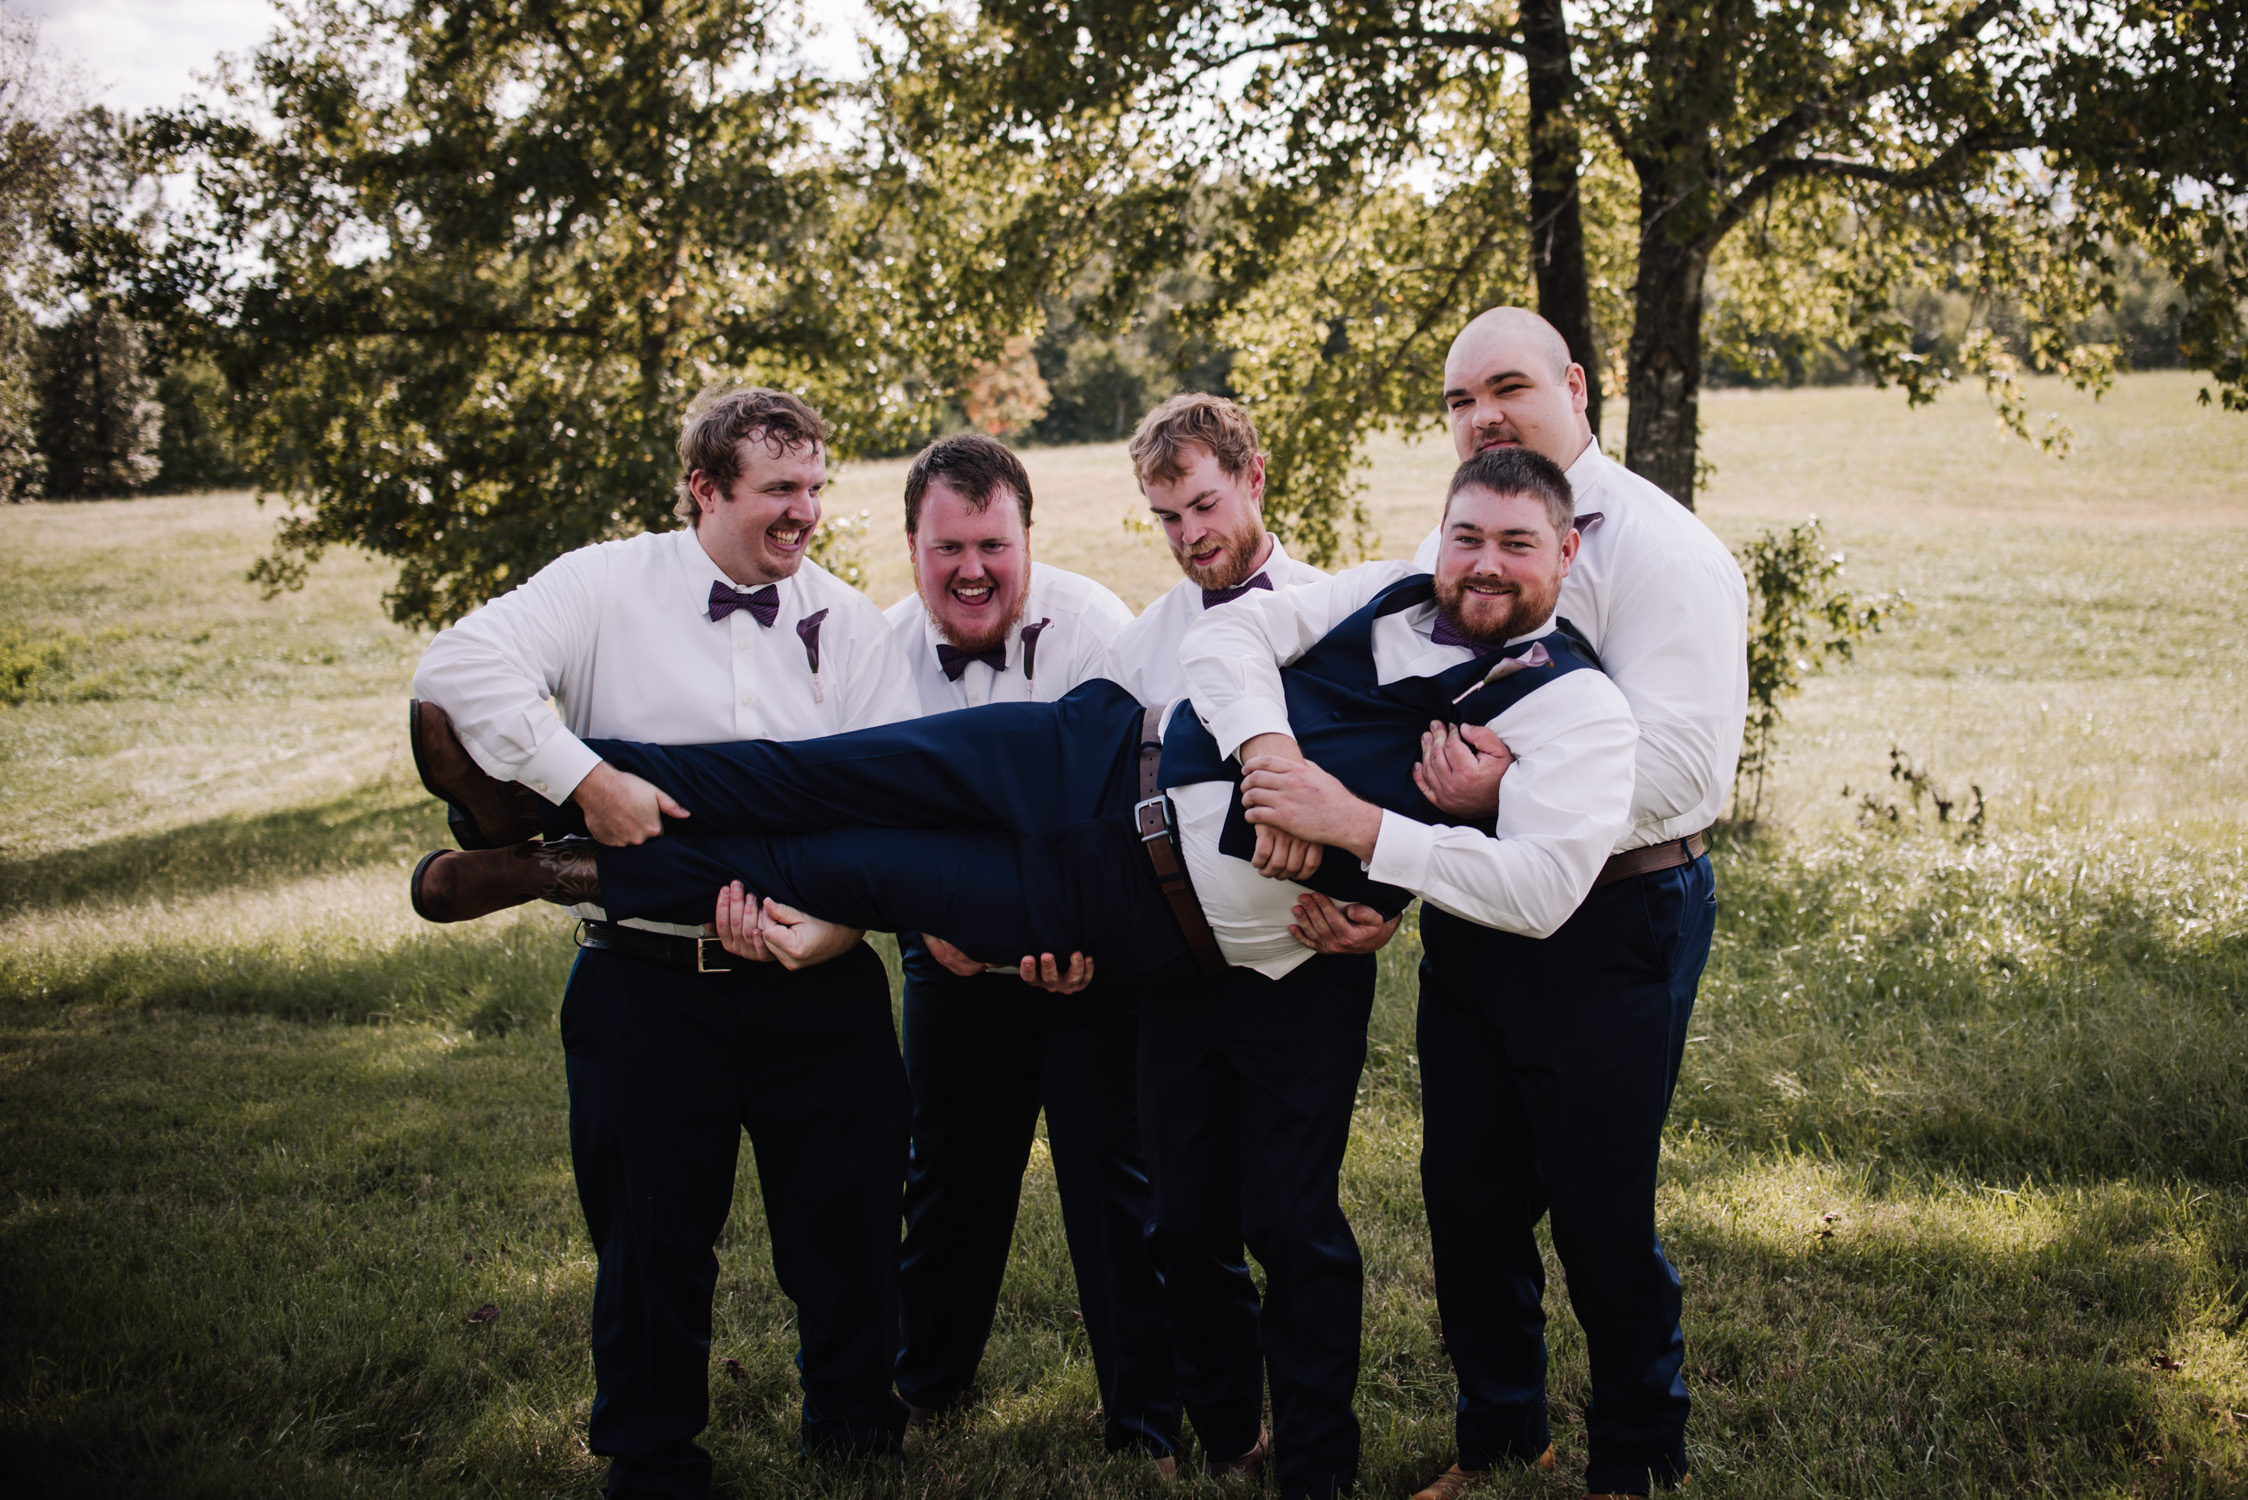 Classy, Southern, Country Wedding |  groomsmen, bridesmaids wedding party portraits at Atkinson Farms in Danville, Virginia | Greensboro Winston-Salem, NC Wedding Photographer